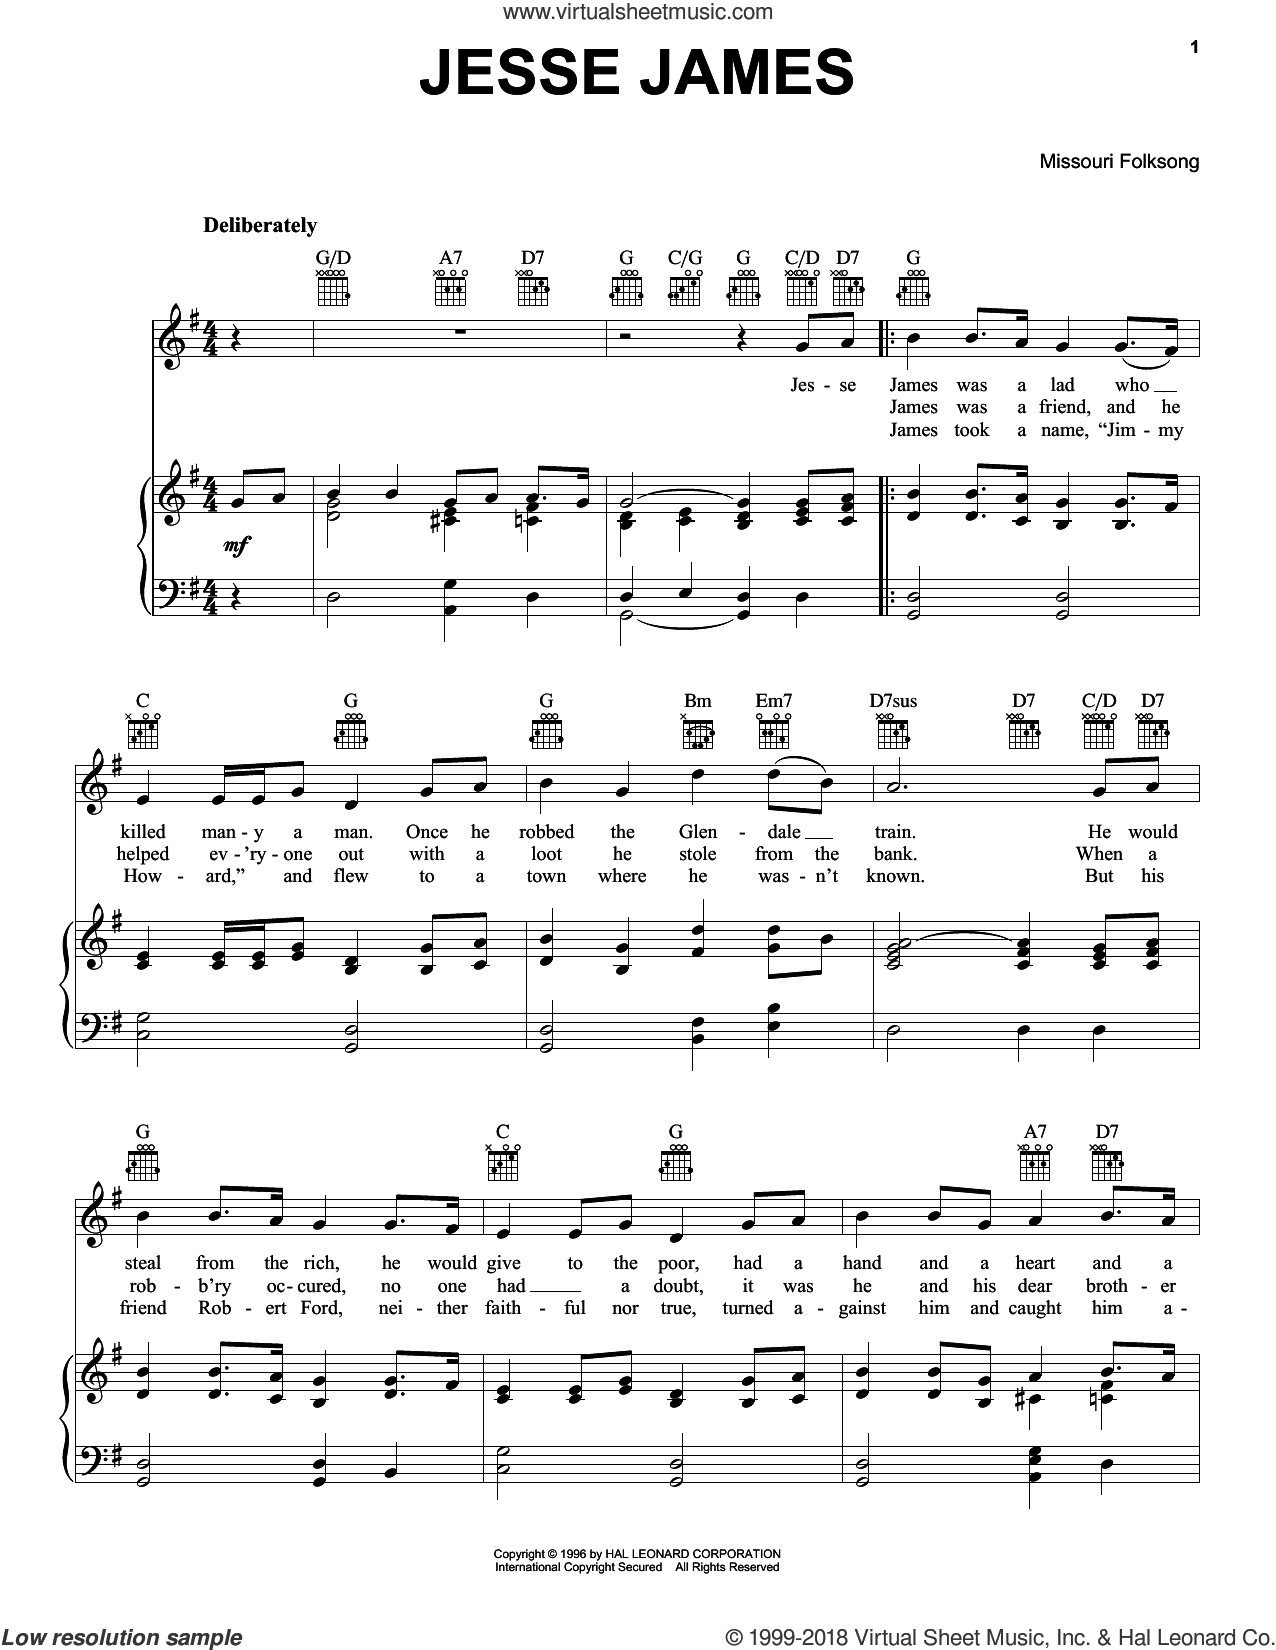 Jesse James sheet music for voice, piano or guitar by Missouri Folksong